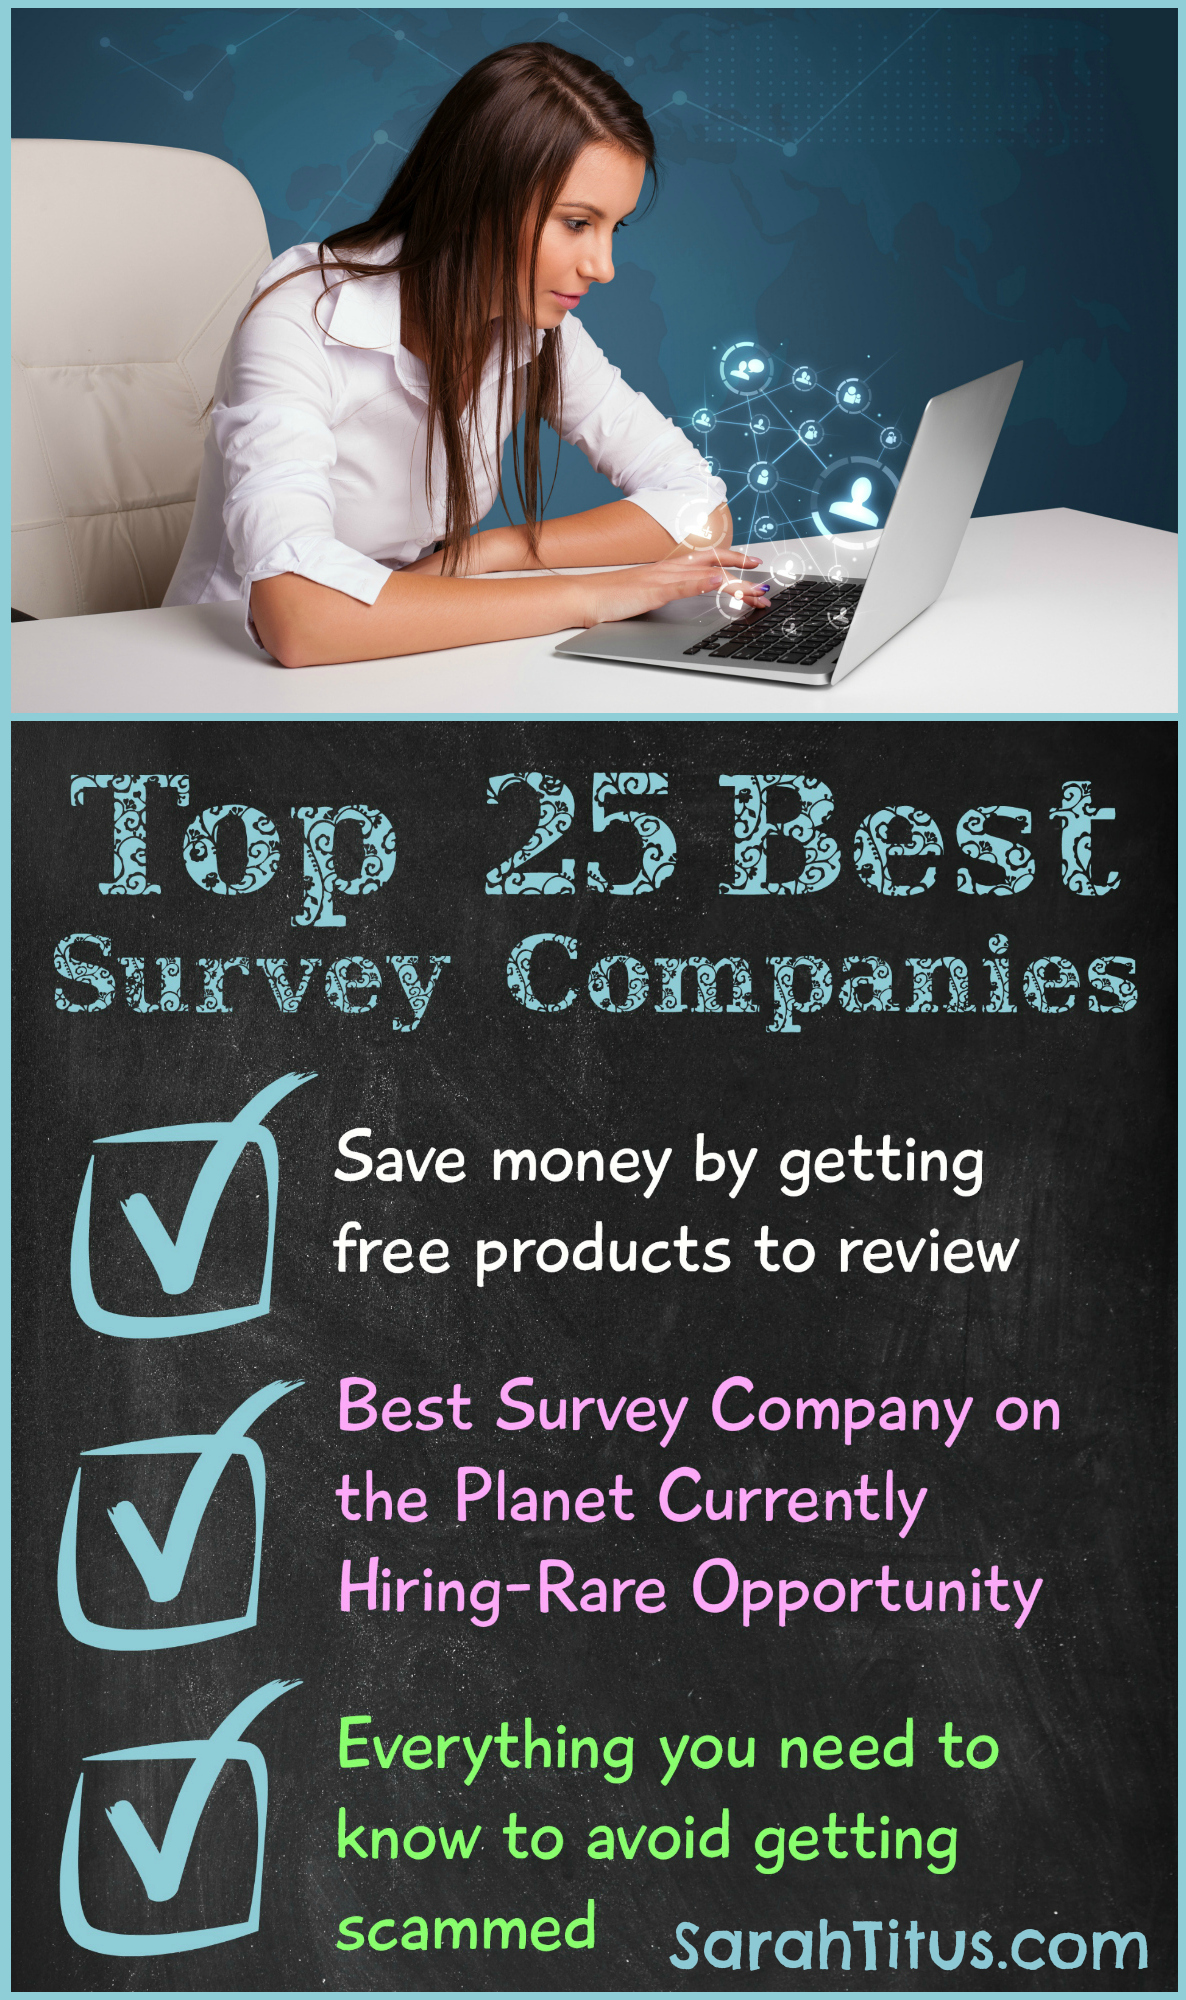 Best 25 Natural Prom Makeup Ideas On Pinterest: Top 25 Best Survey Companies